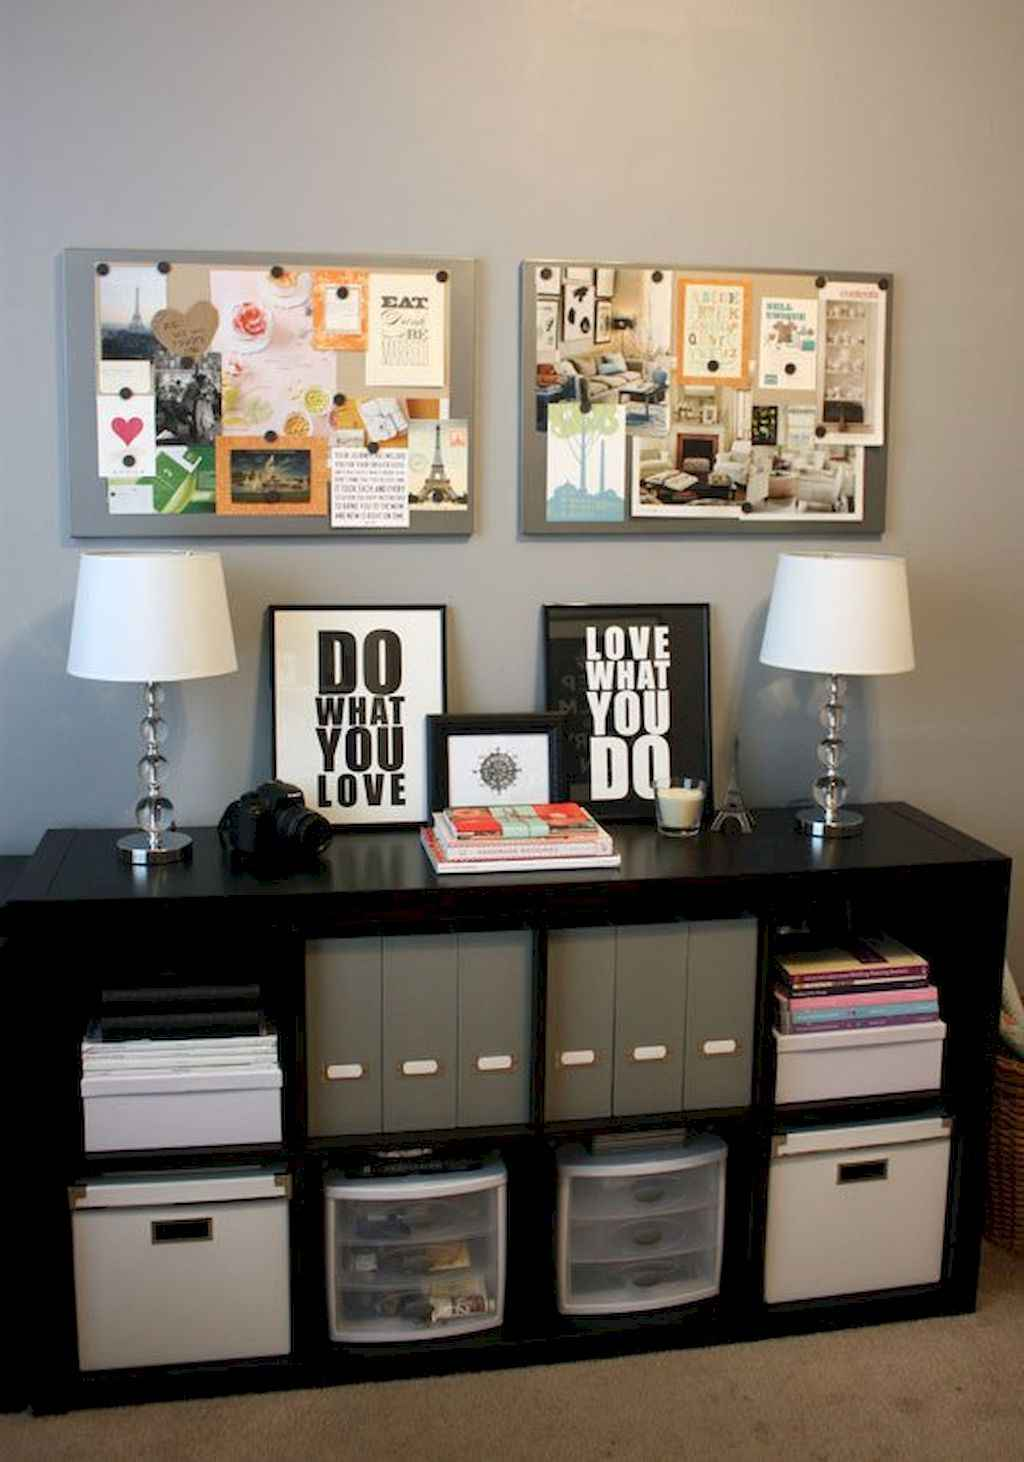 Couples first apartment decorating ideas (10)